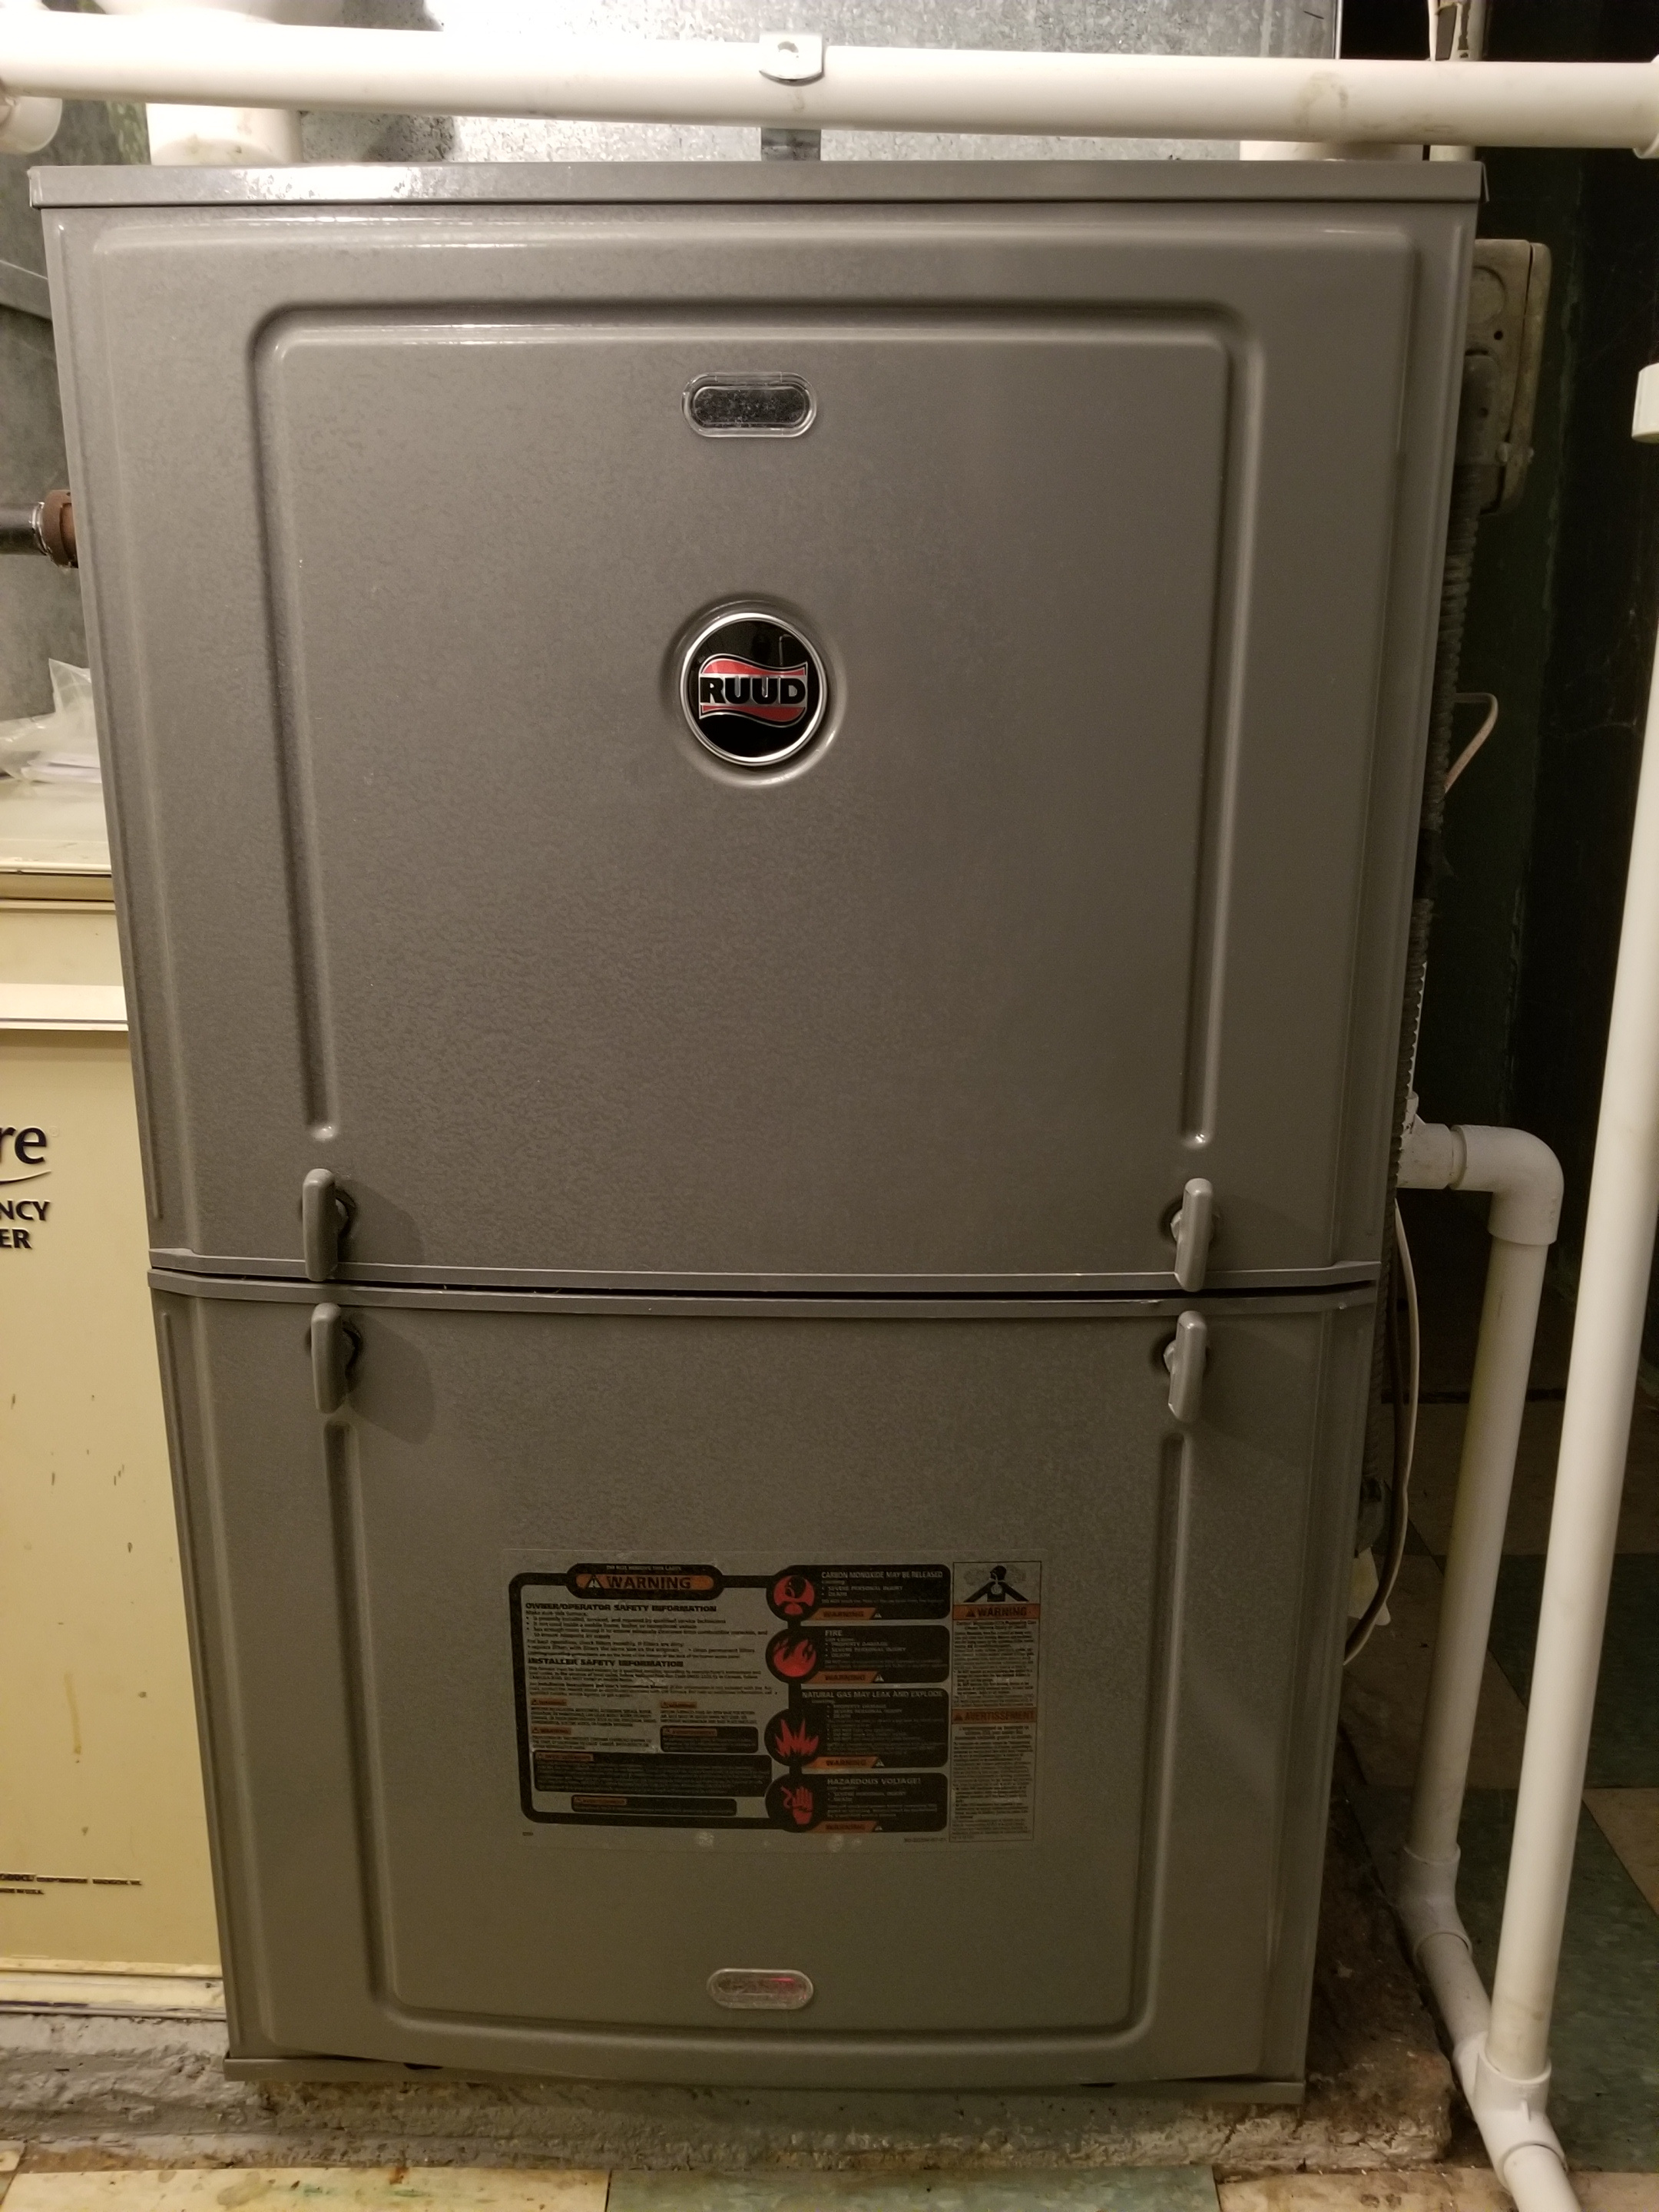 Repaired the Rheem furnace and made adjustments to improve the overall efficiency and life expectancy of the equipment